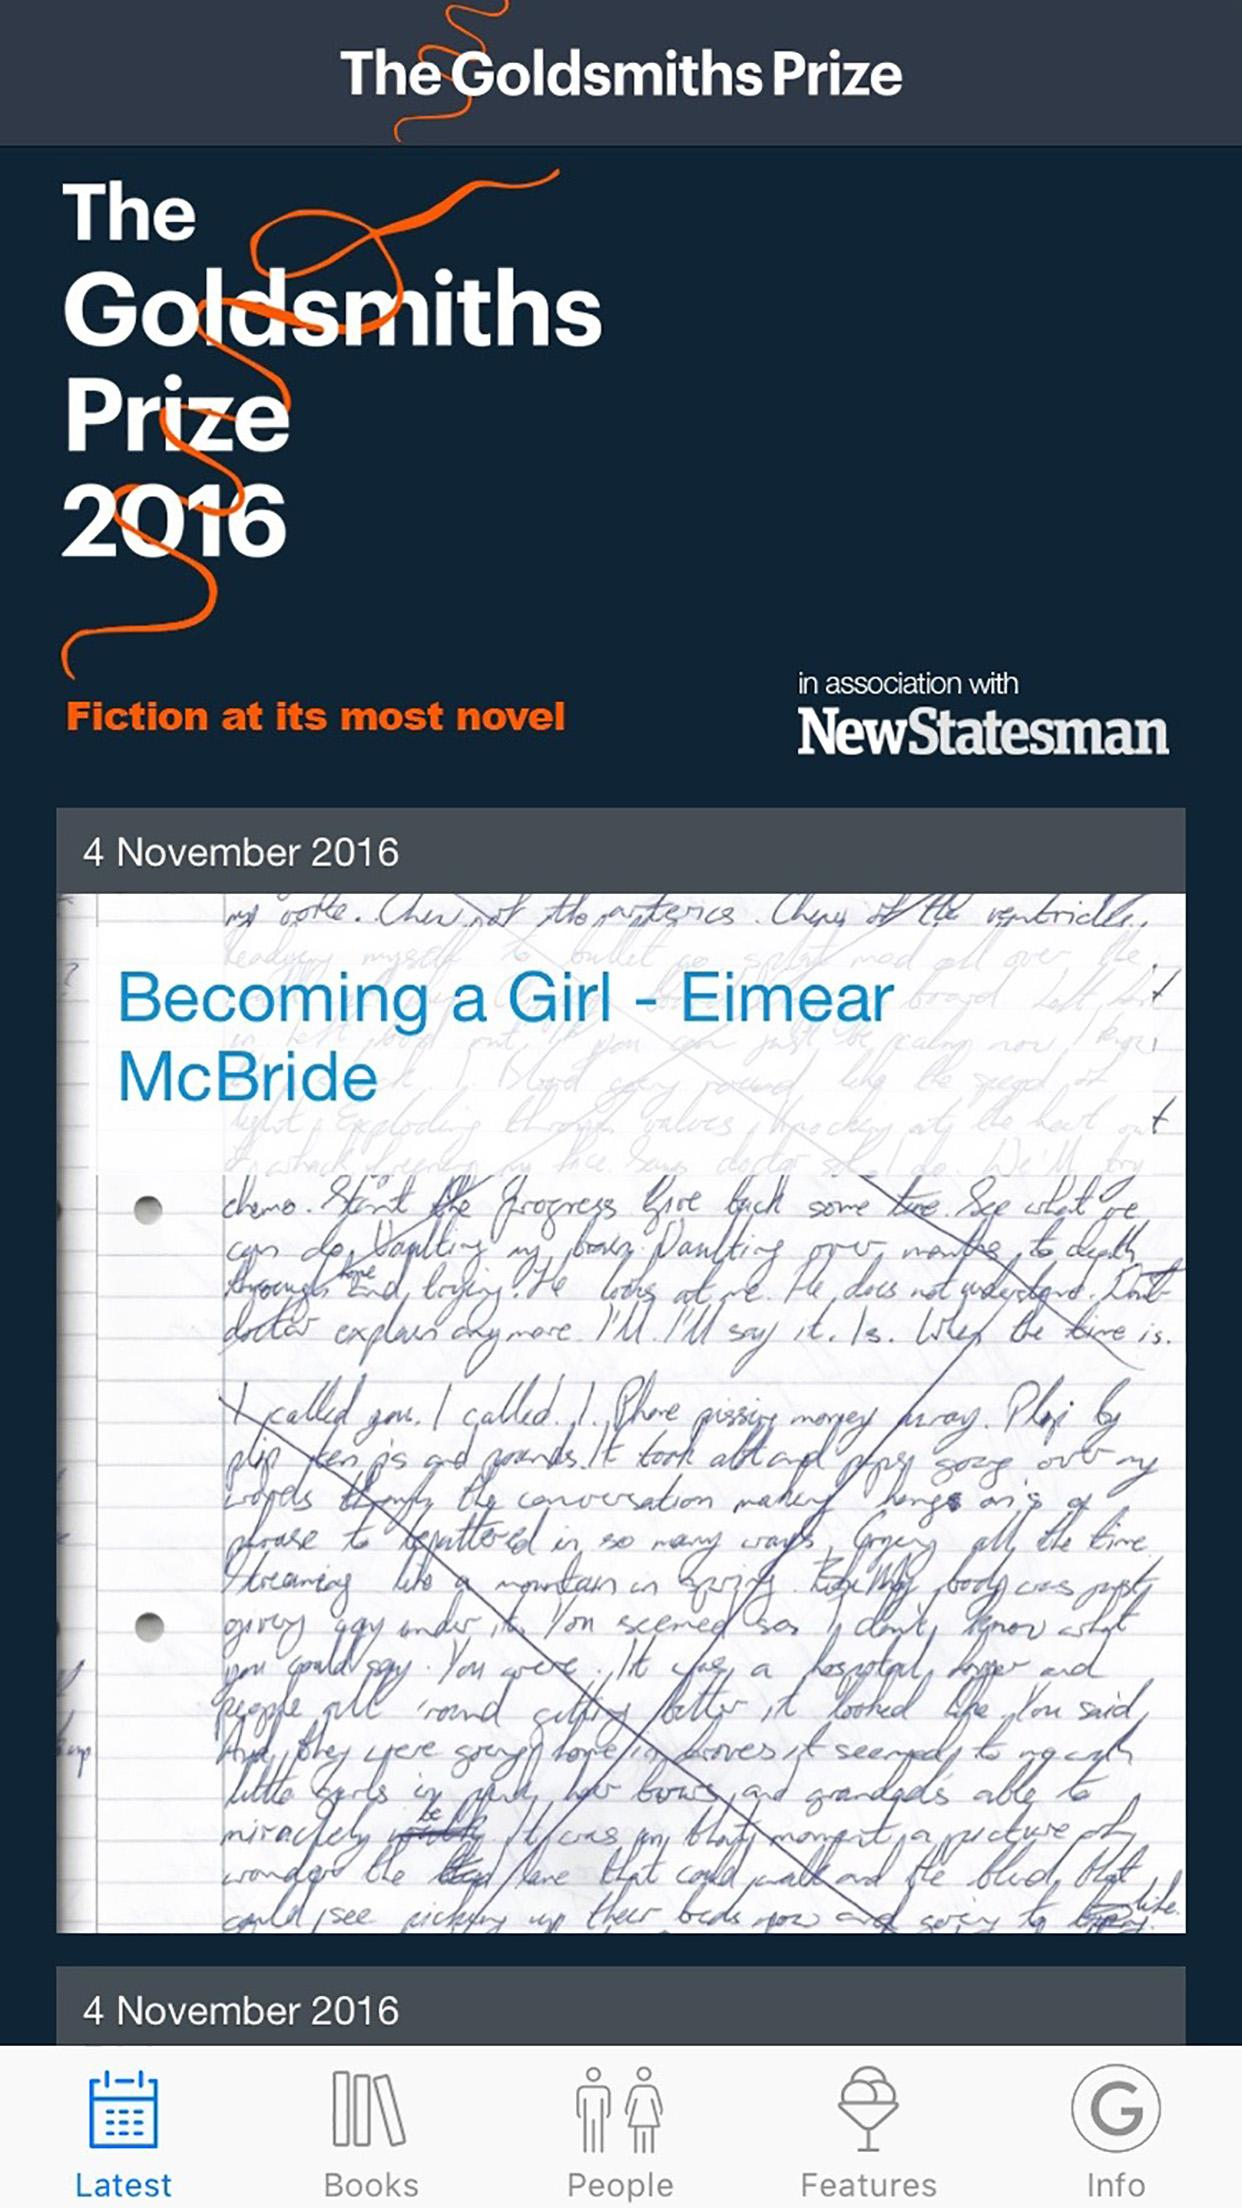 Goldsmiths Prize app on an iPhone with detail of Eimear McBride's manuscript for 'A Girl is a Half-formed Thing'.